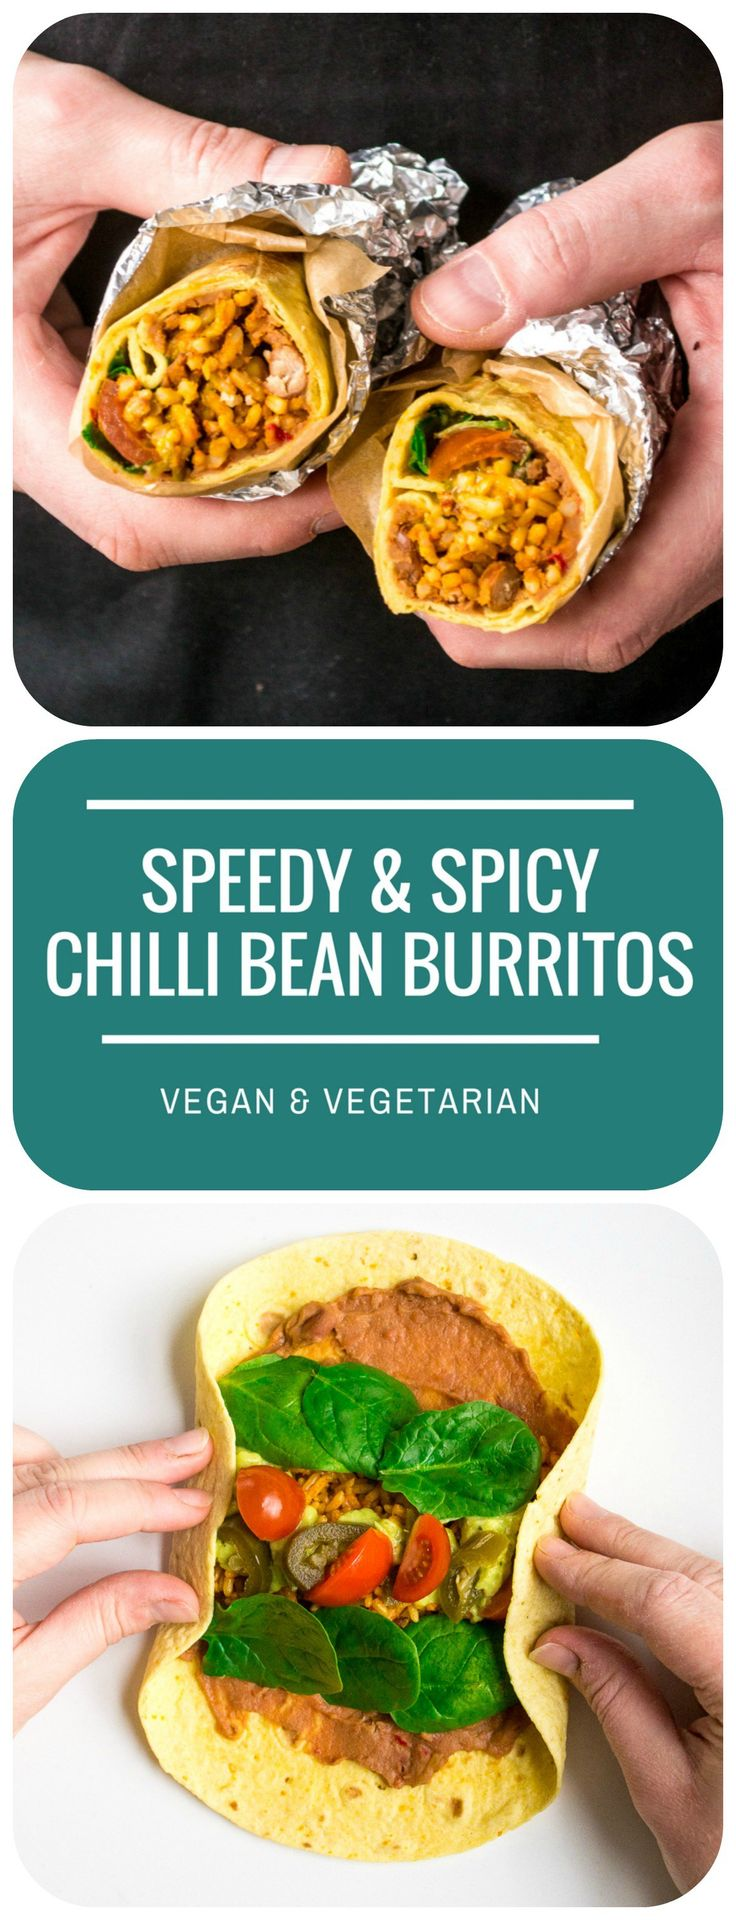 These Speedy & Spicy Chilli Bean Burritos are lip-smackingly good, with a filling that's creamy, fresh and spicy all at the same time! A quick and easy Mexican dinner - vegan and vegetarian.